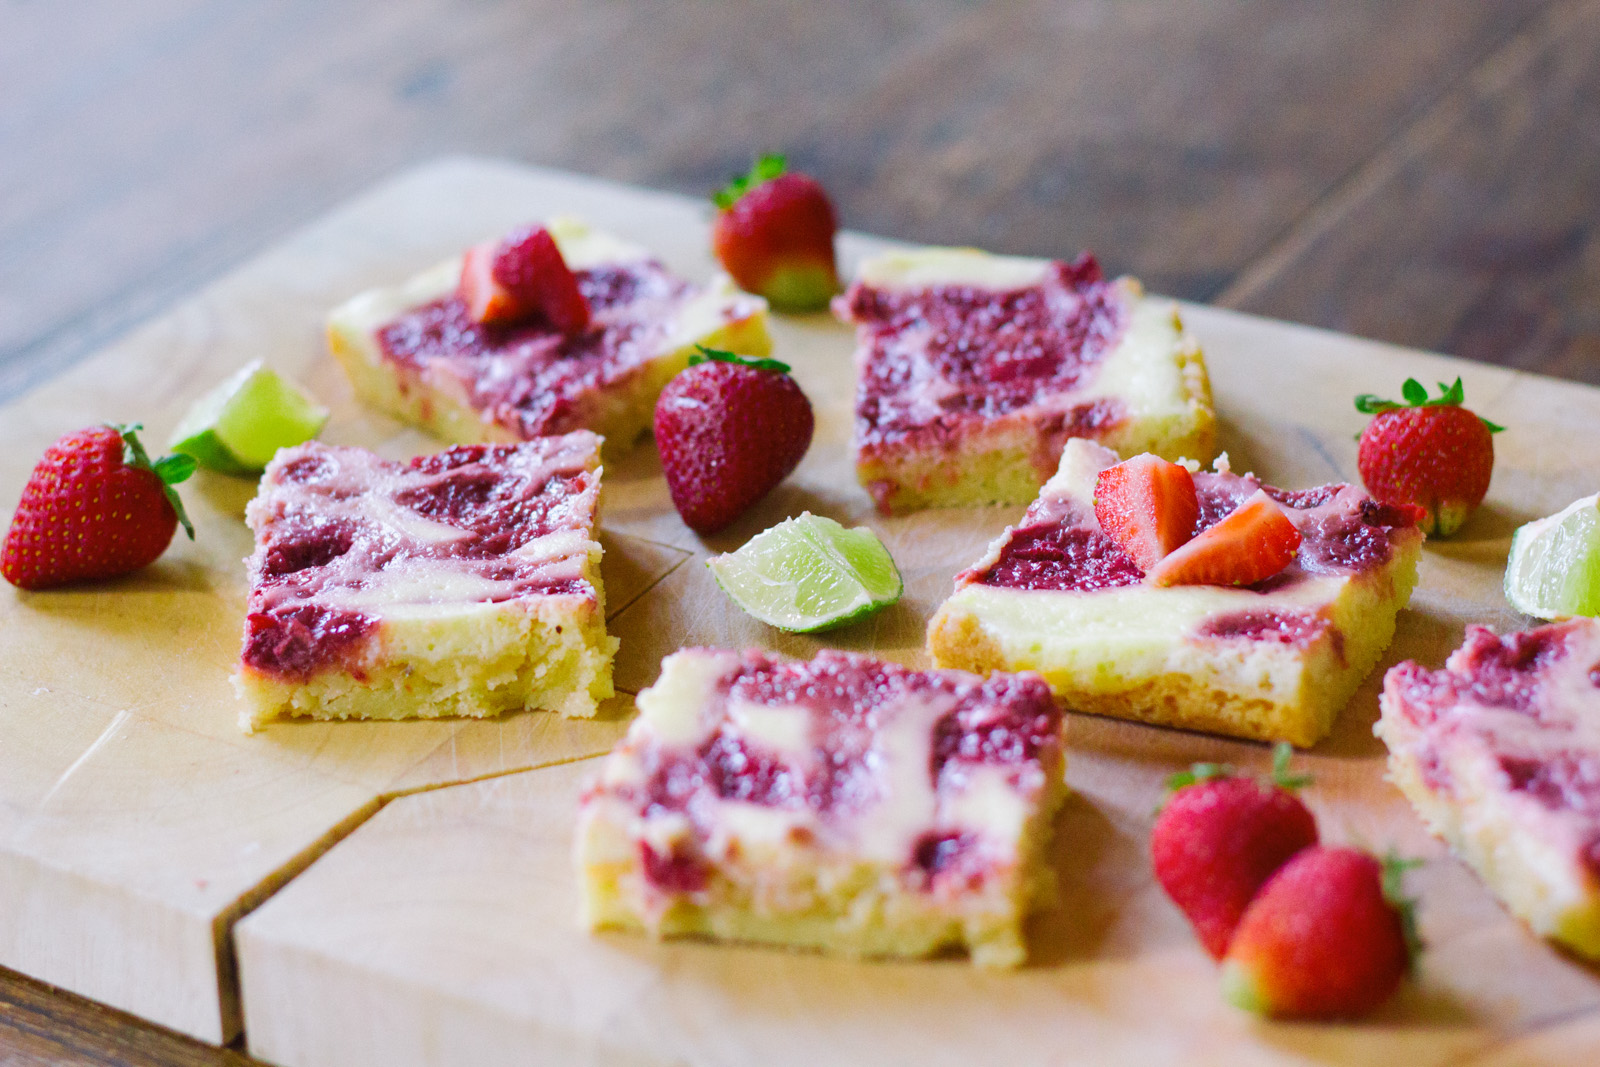 Recept: Lemon Cheesecake met aardbeien